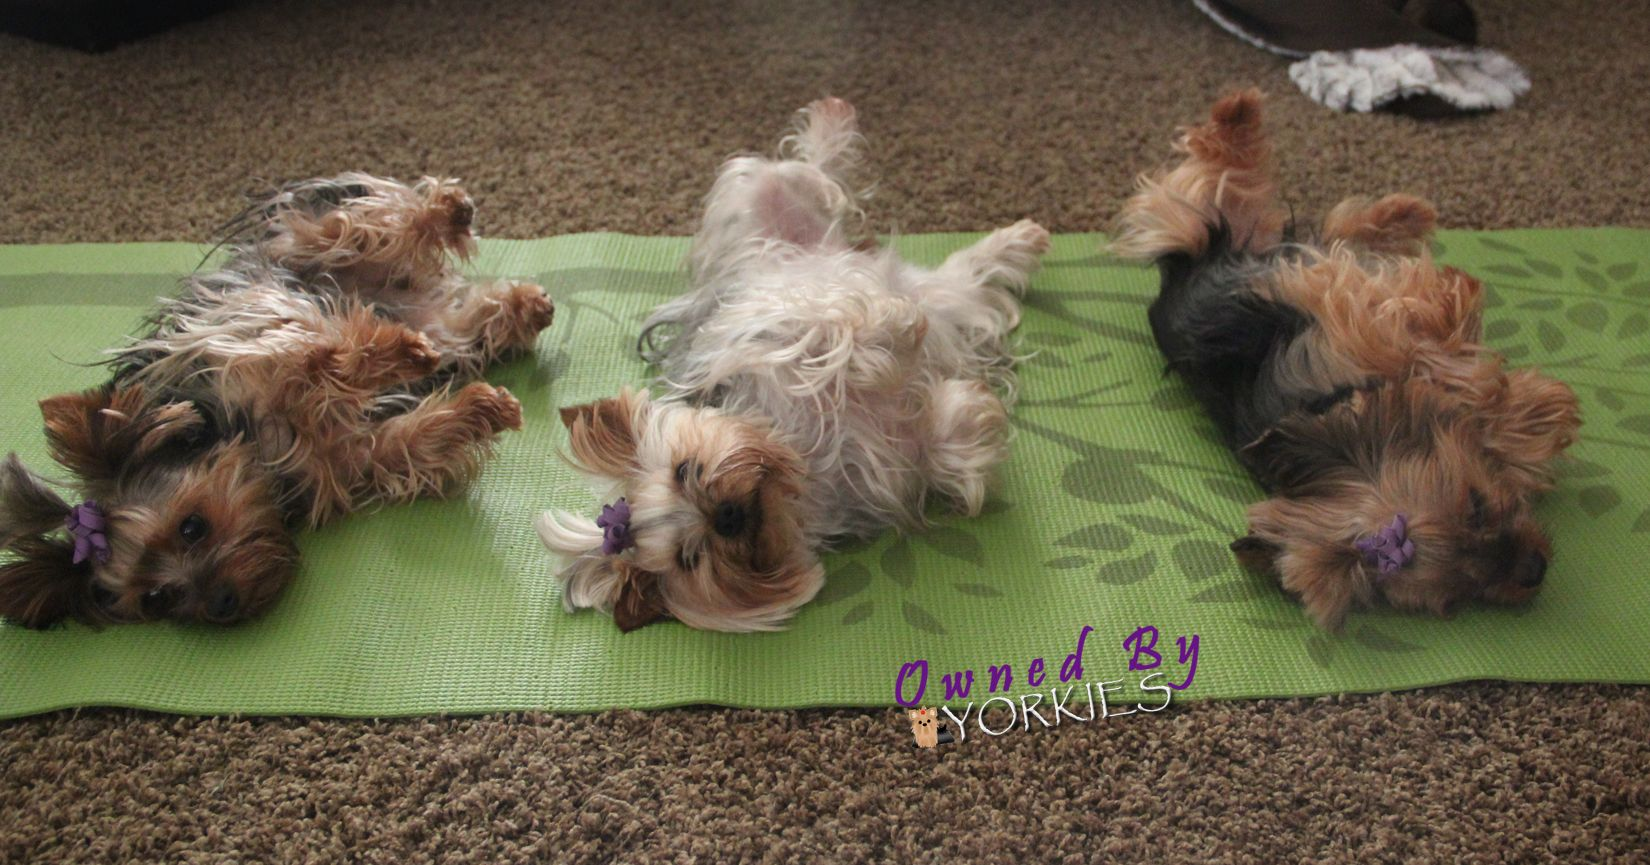 Doing some DOGA! That's the yoga may I have!